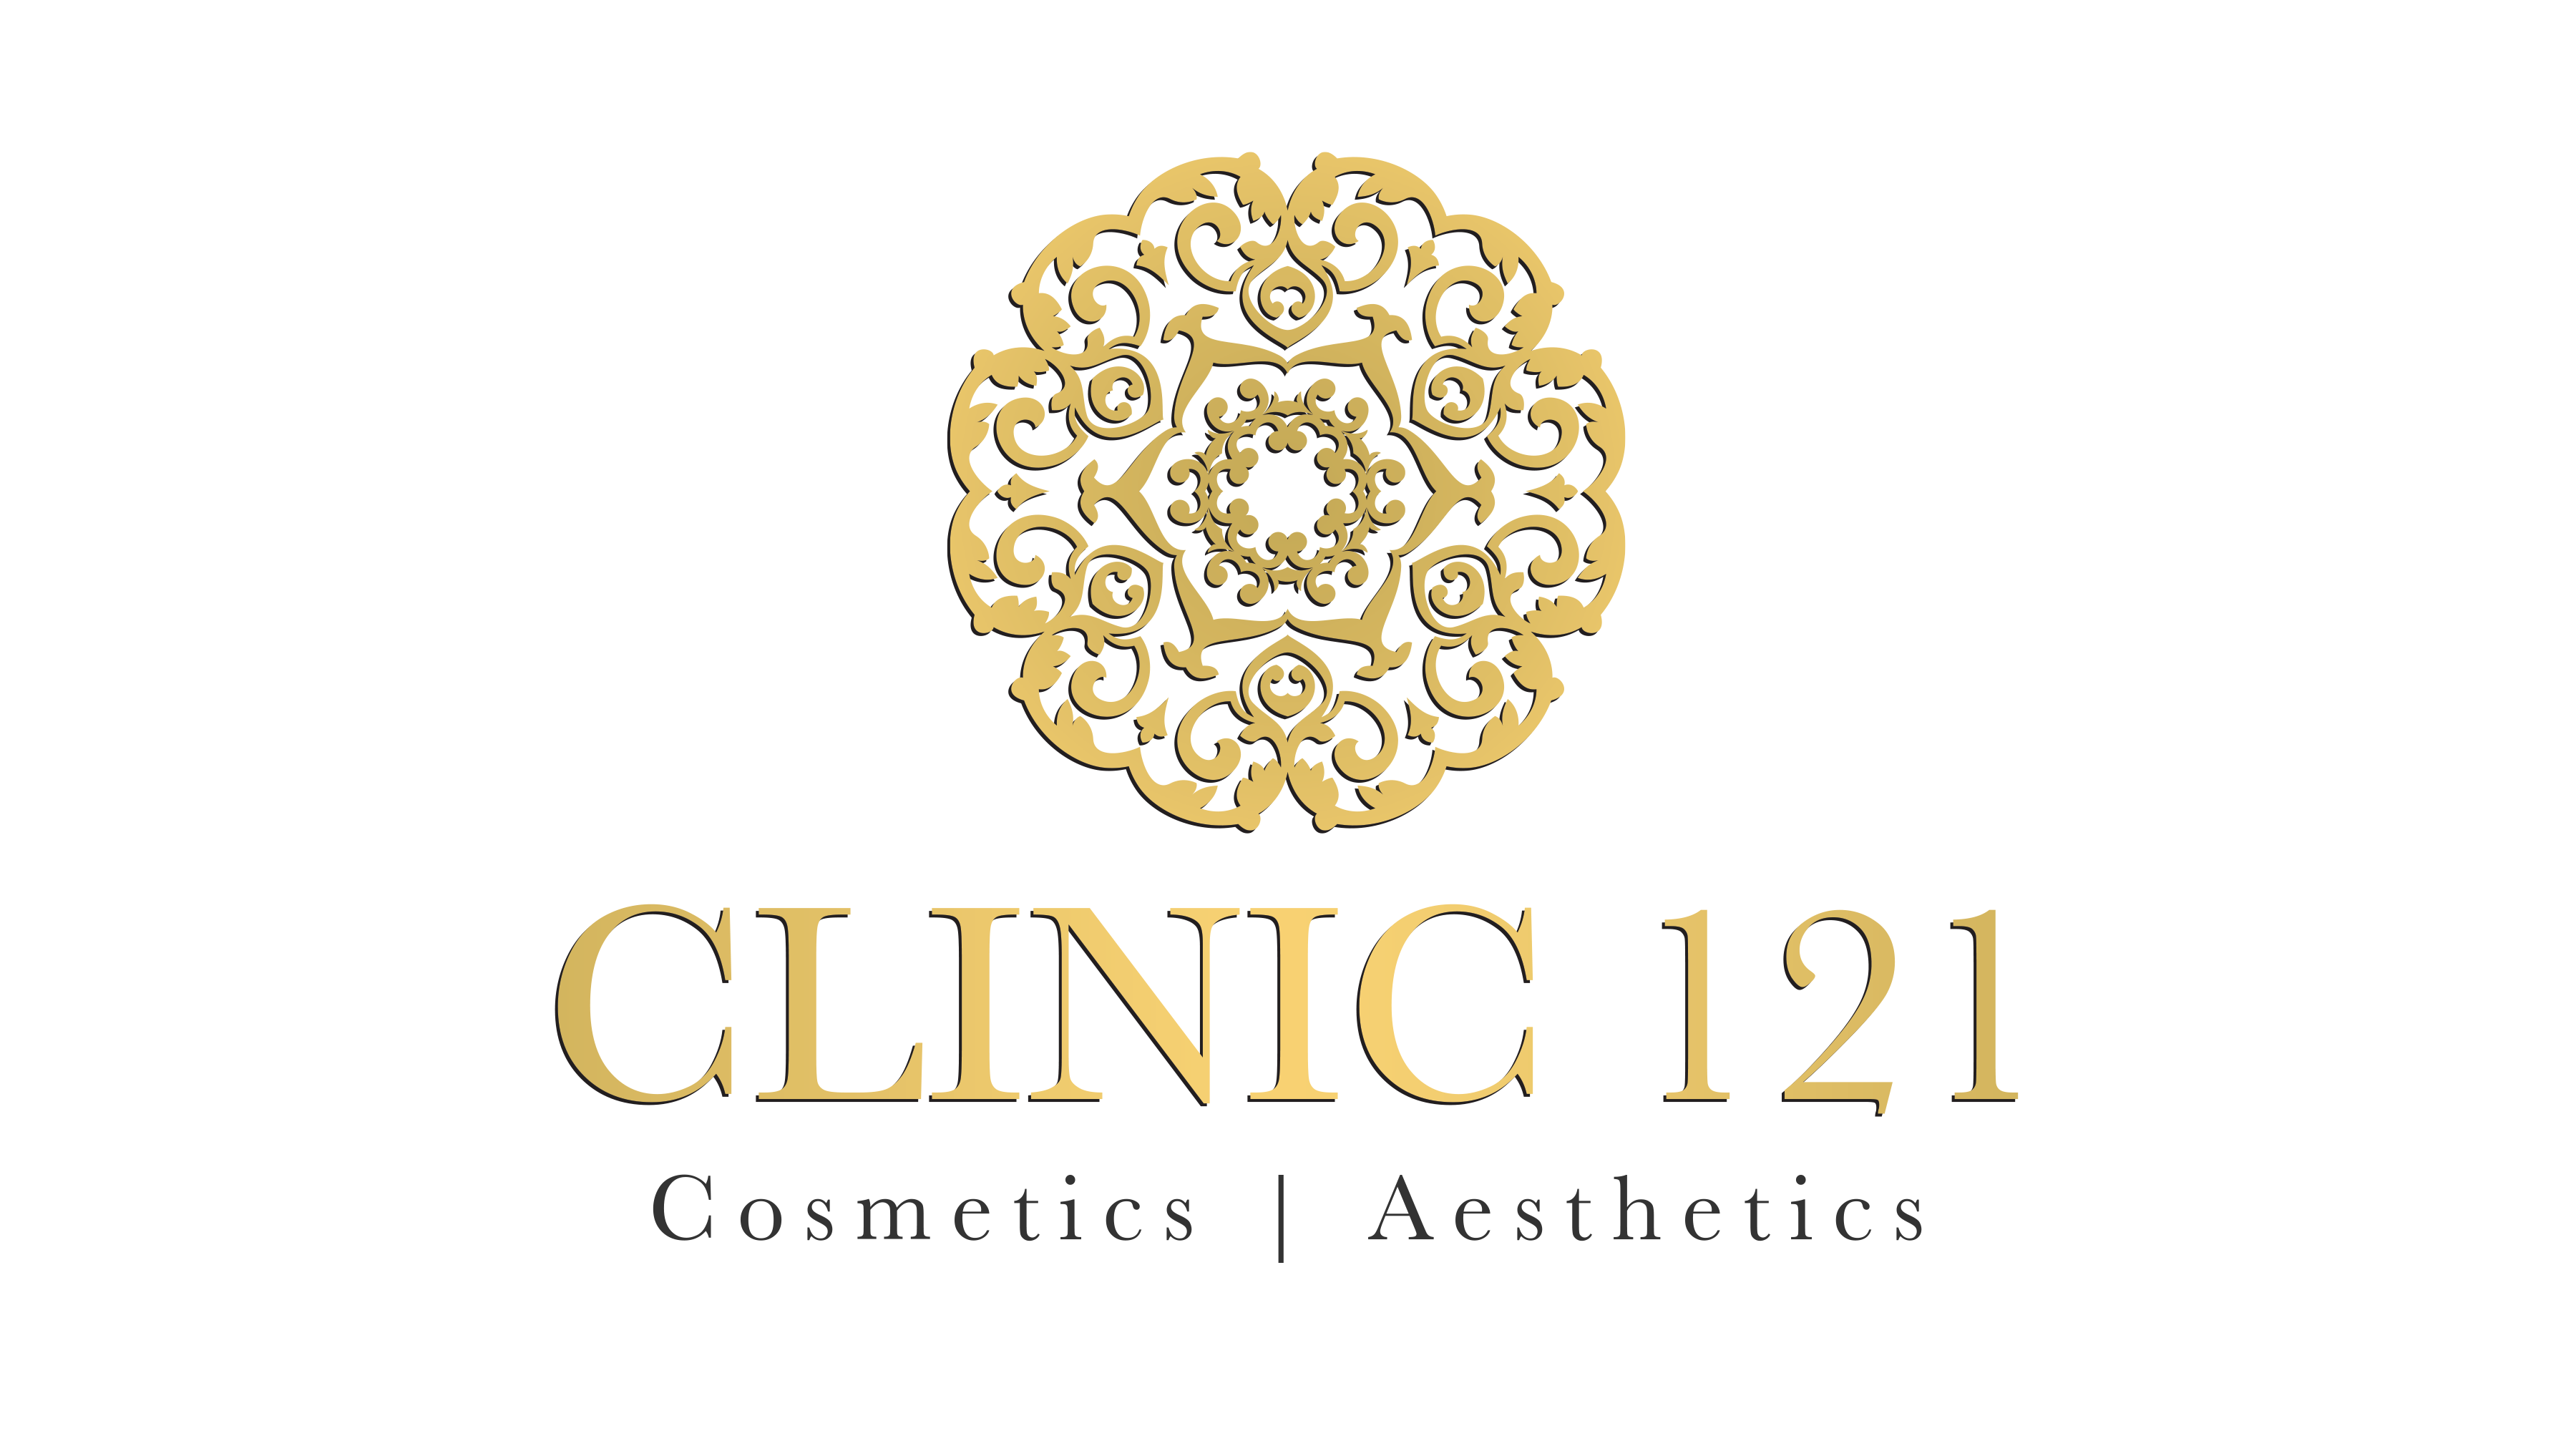 Clinic 121 Cosmetics and Aesthetics